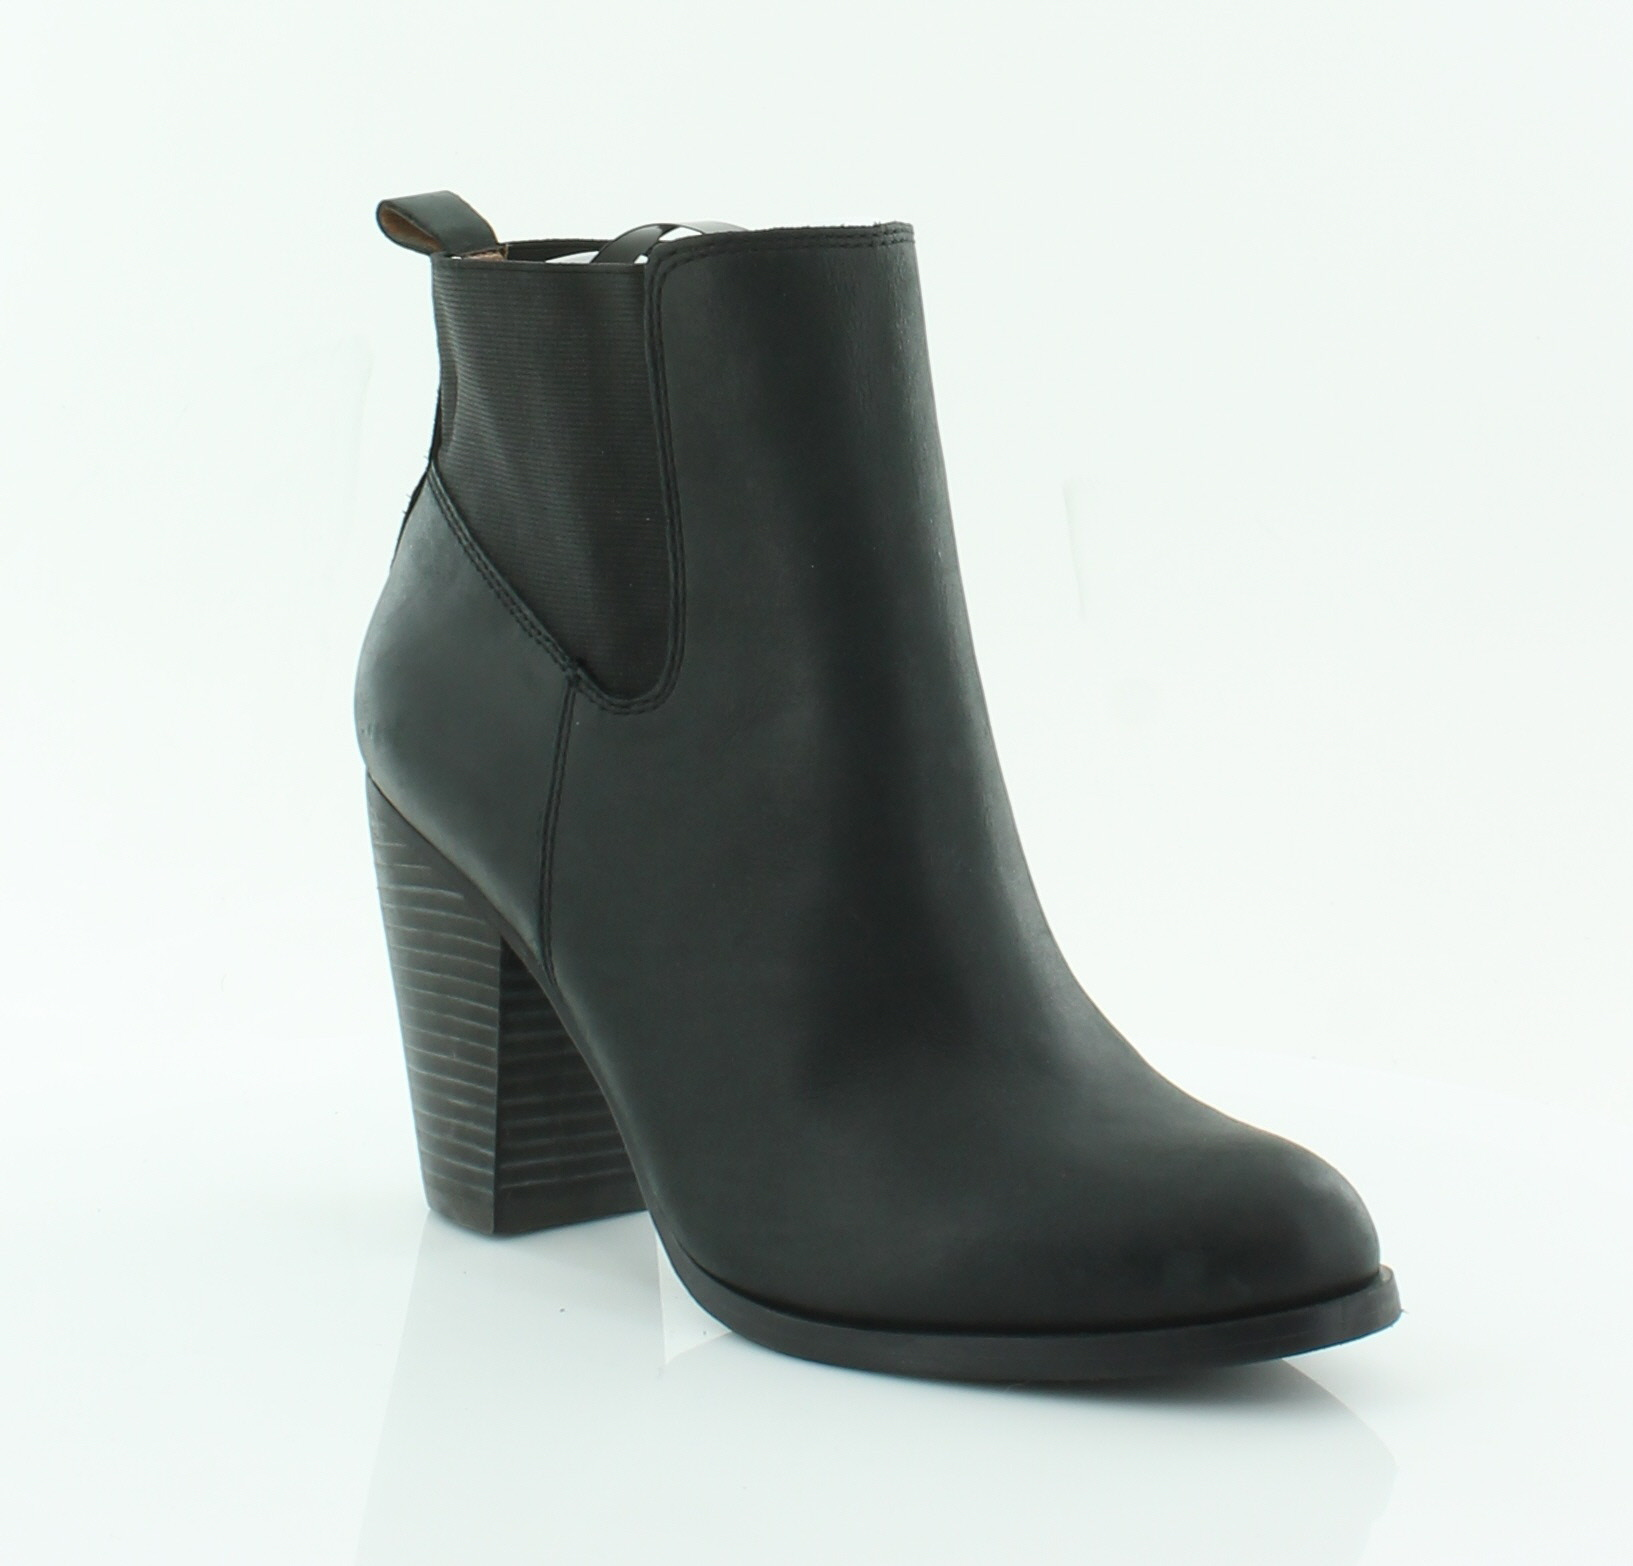 lucky brand new parlei black womens shoes size 10 m boots